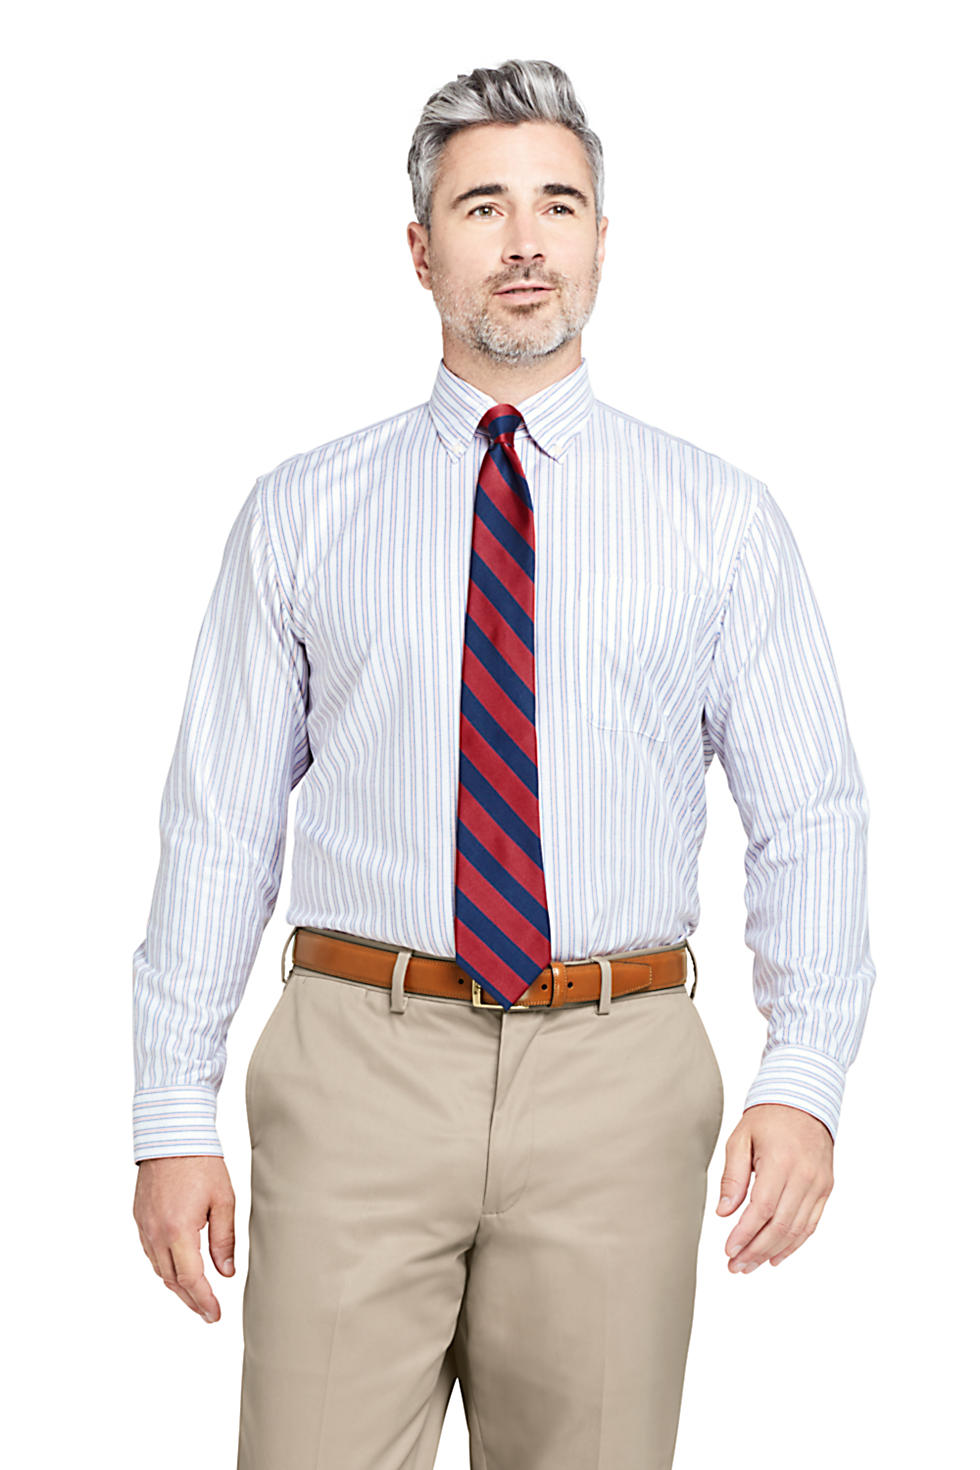 Lands' End Men's Traditional Fit Supima Oxford Dress Shirt (various styles and sizes)